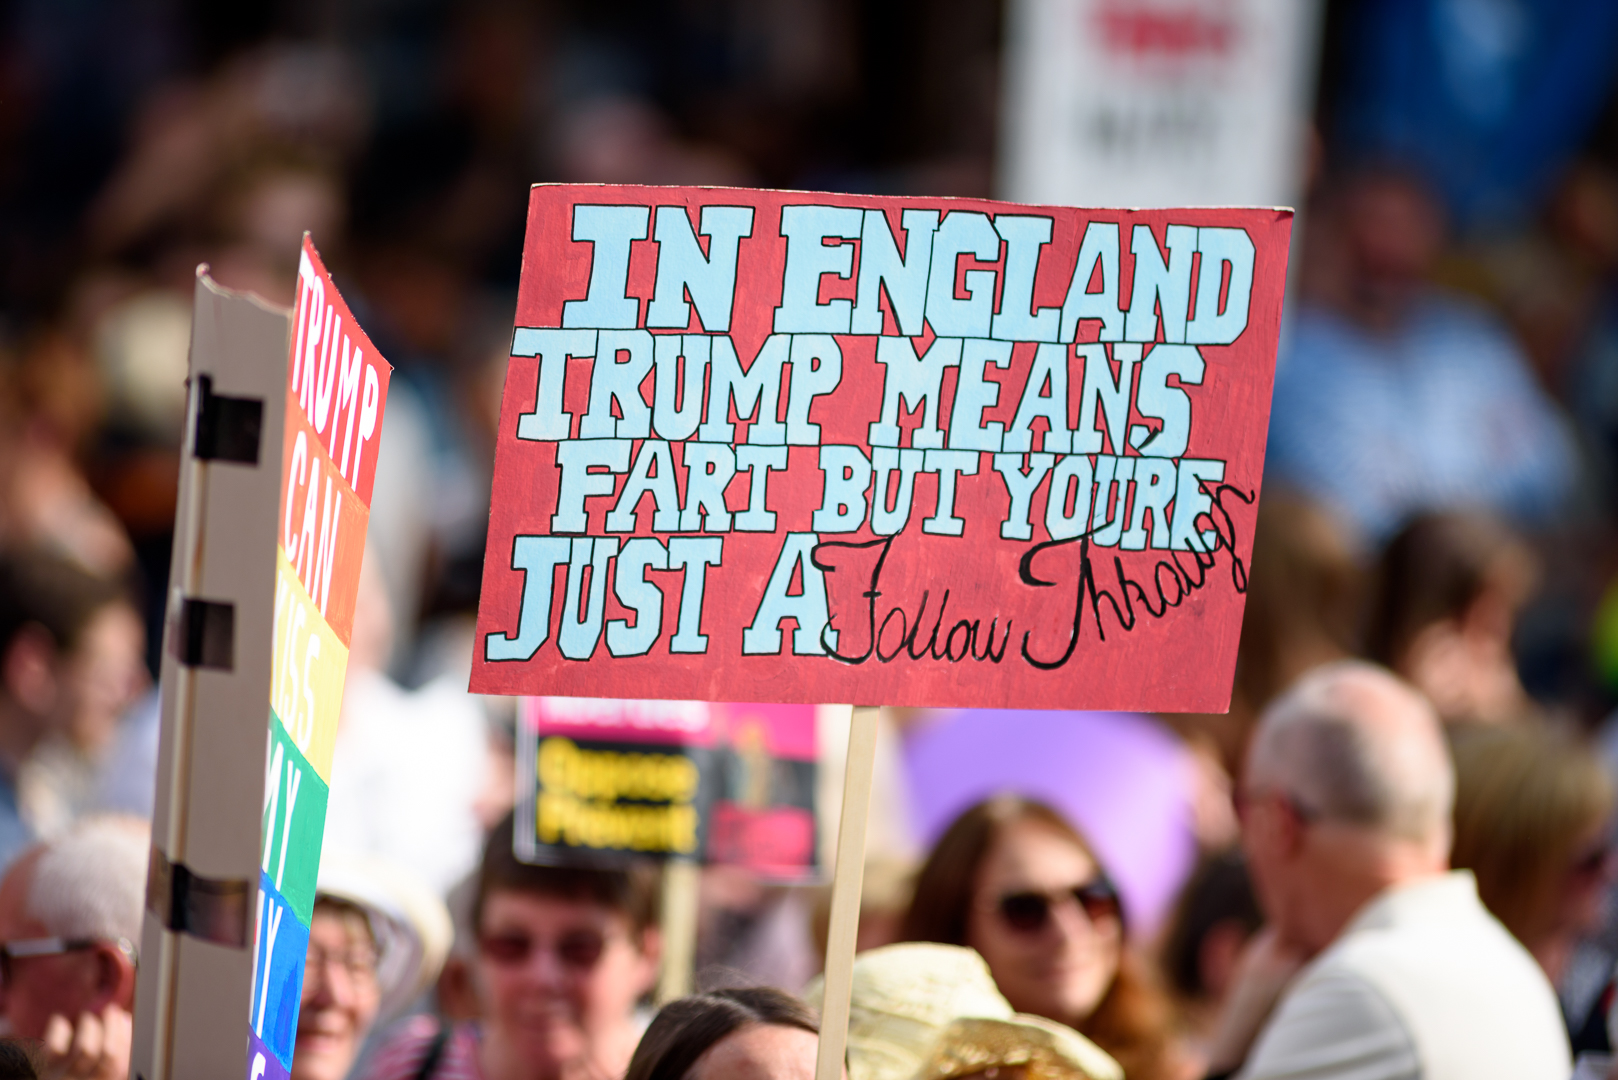 Sheffield Anti-Trump rally July 2018 Blog12.jpg